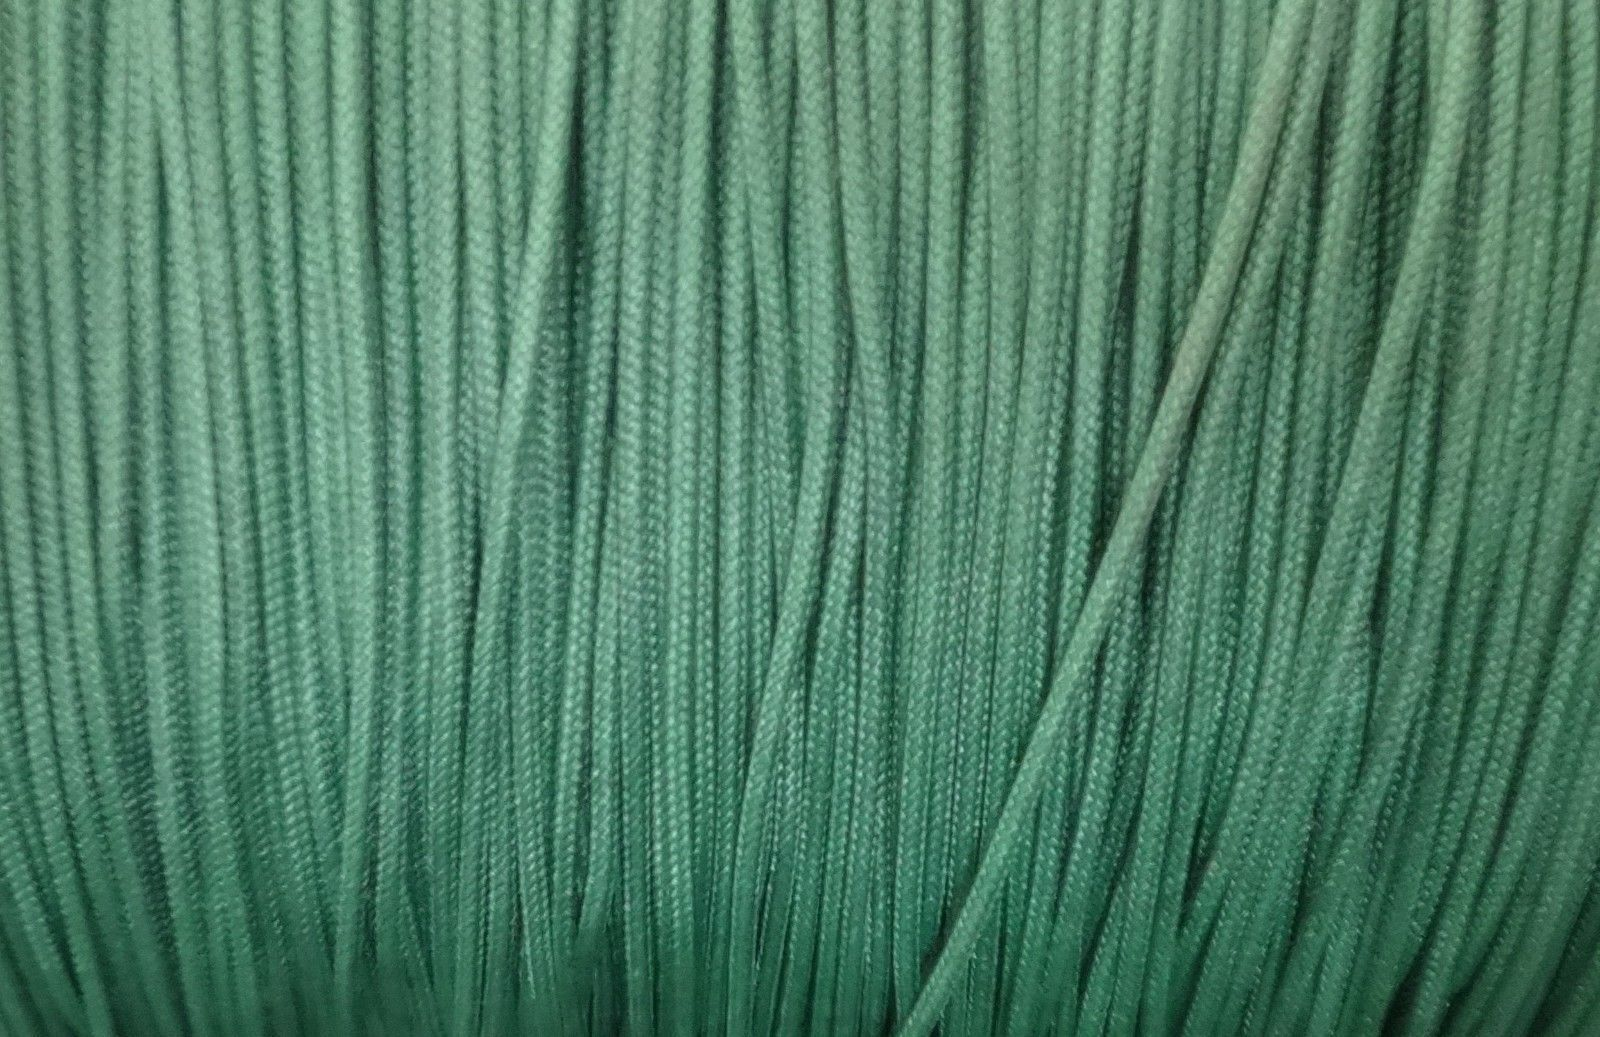 20 FEET:1.8mm Forest GREEN LIFT CORD for ROMAN/PLEATED shades & blinds